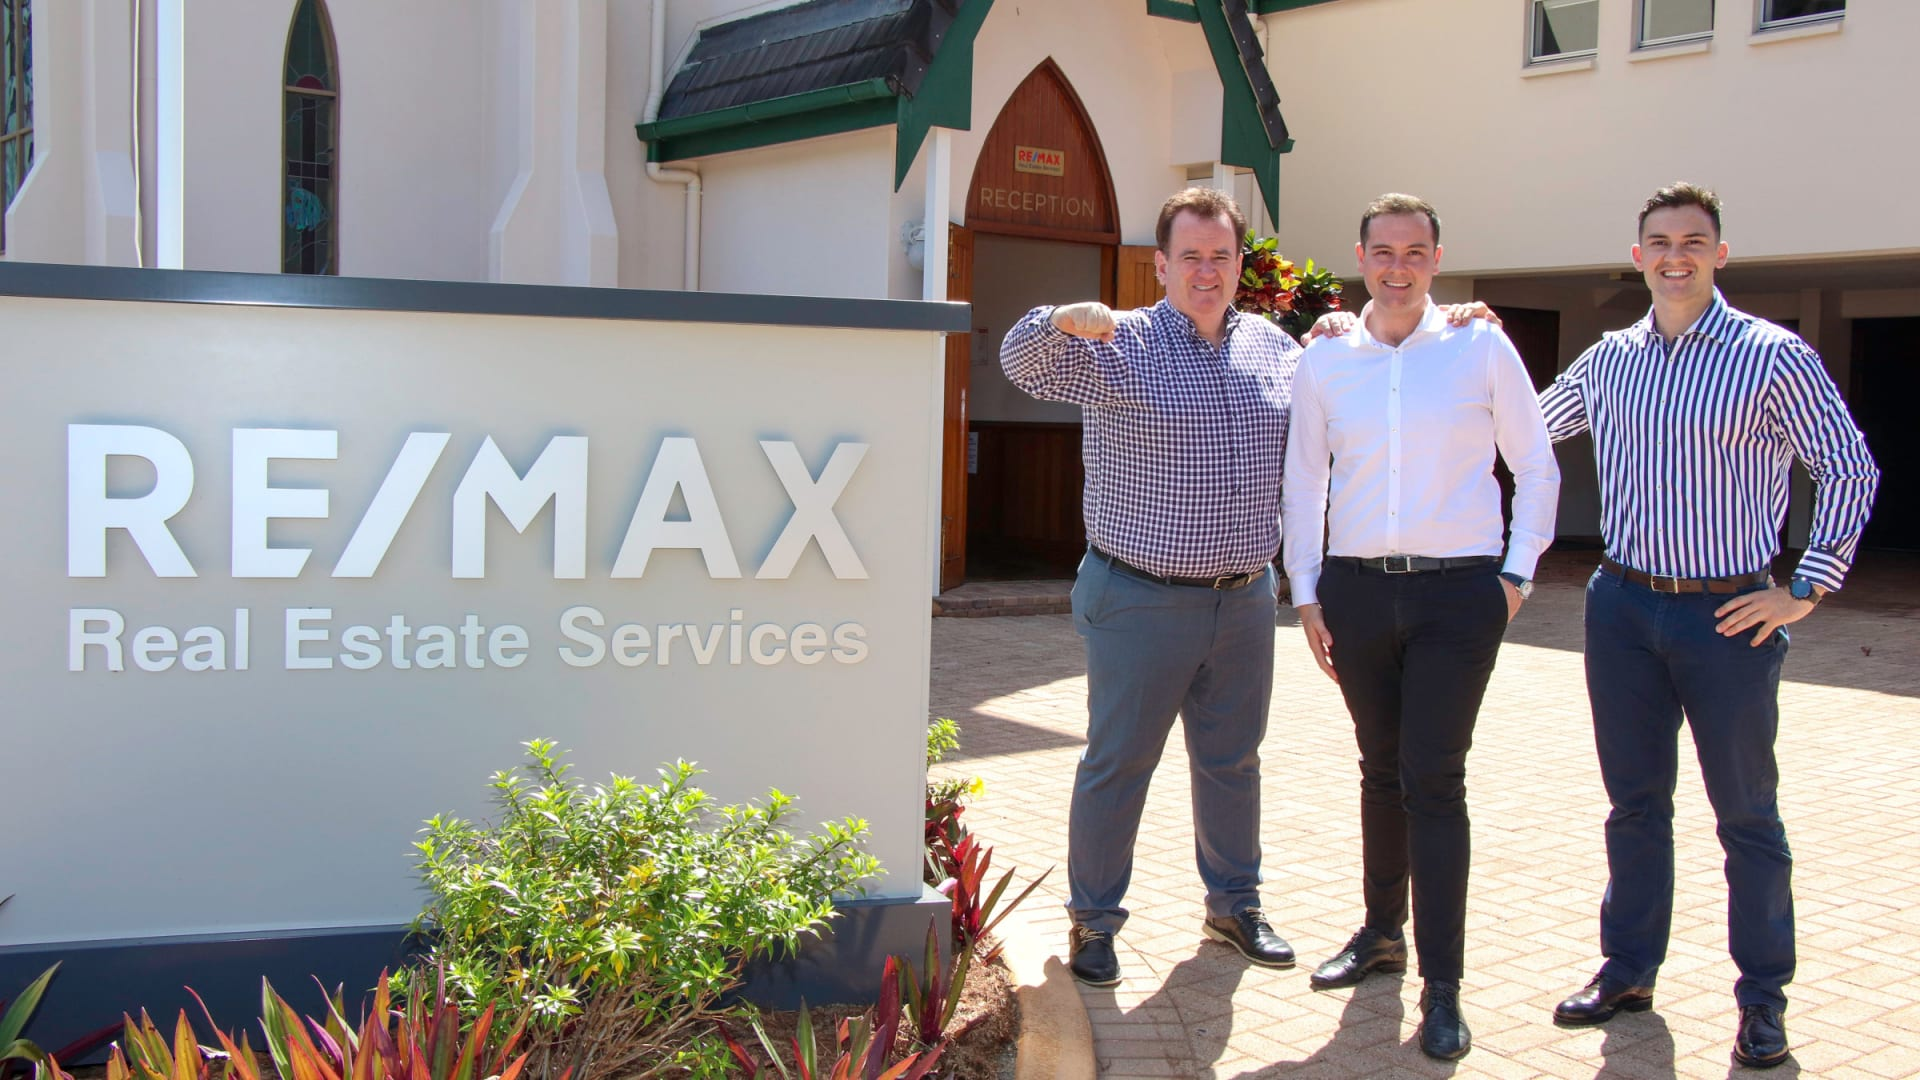 Cairns real estate 'king' sells RE/MAX business